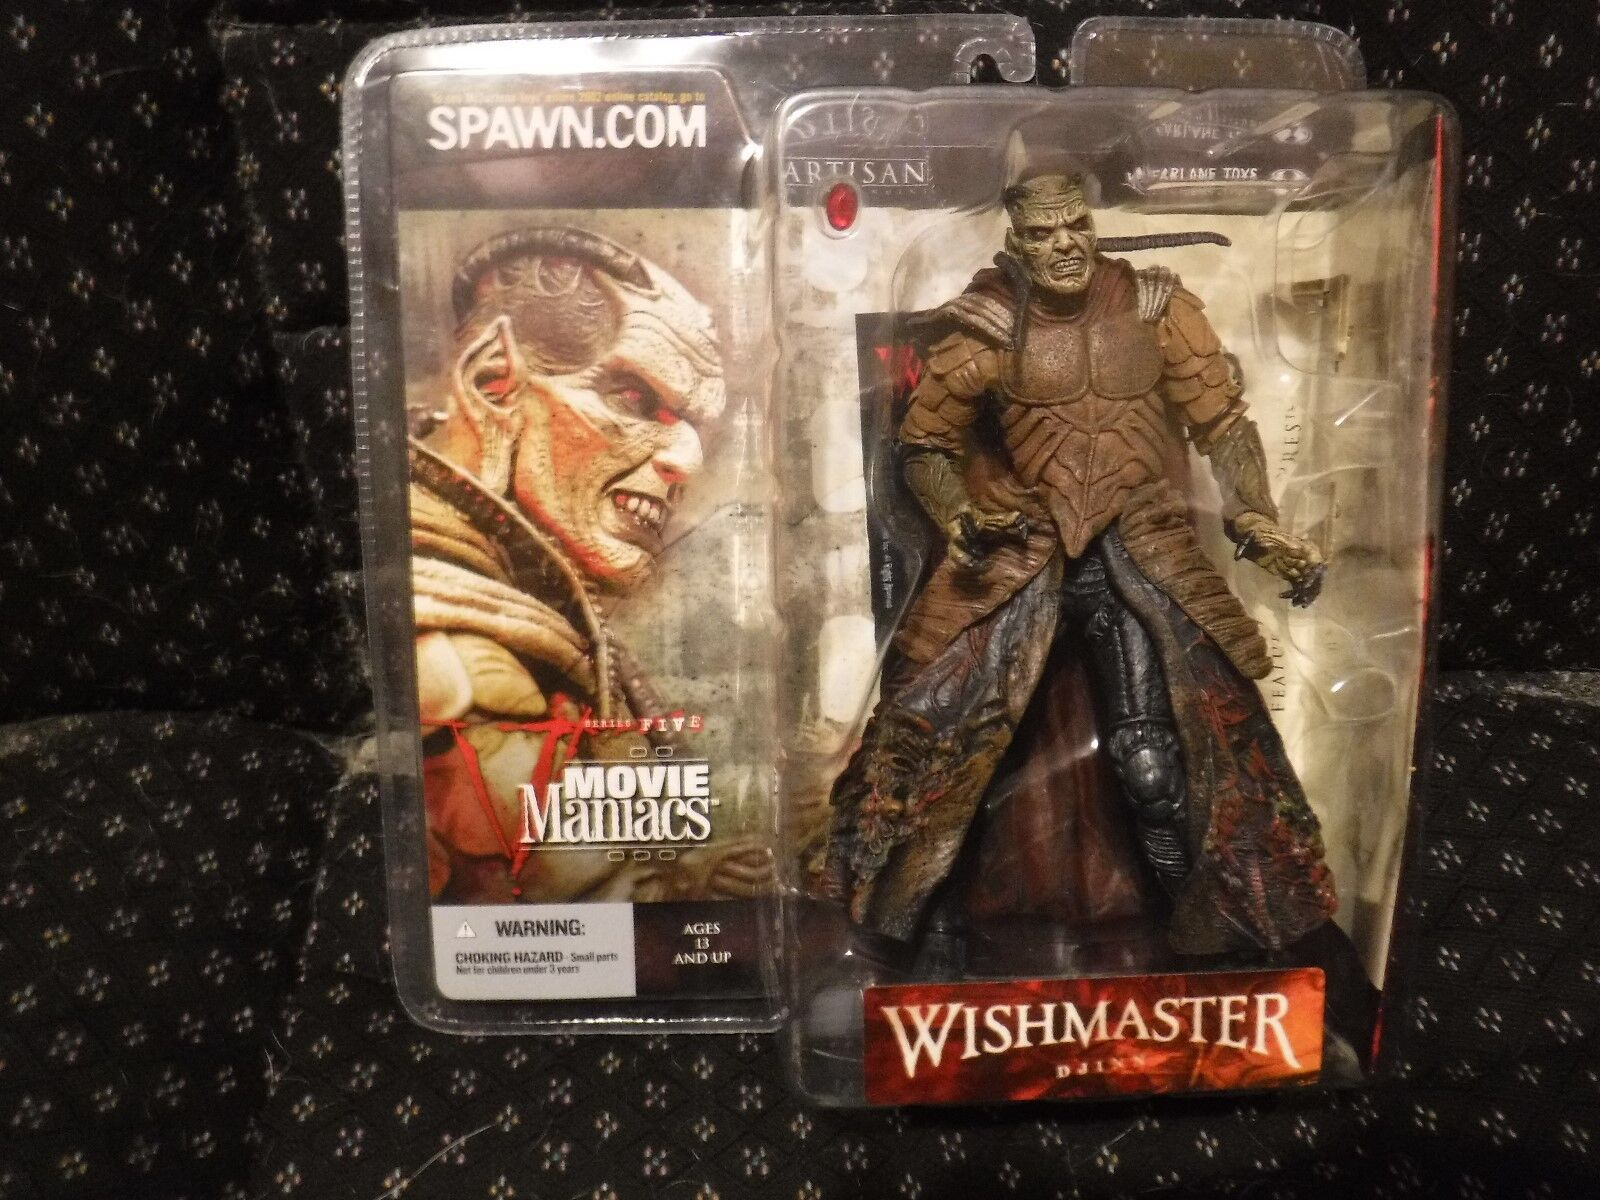 2002 Djinn Wishmaster McFarlane Toys Movie Maniacs Series 5  Action Figure New